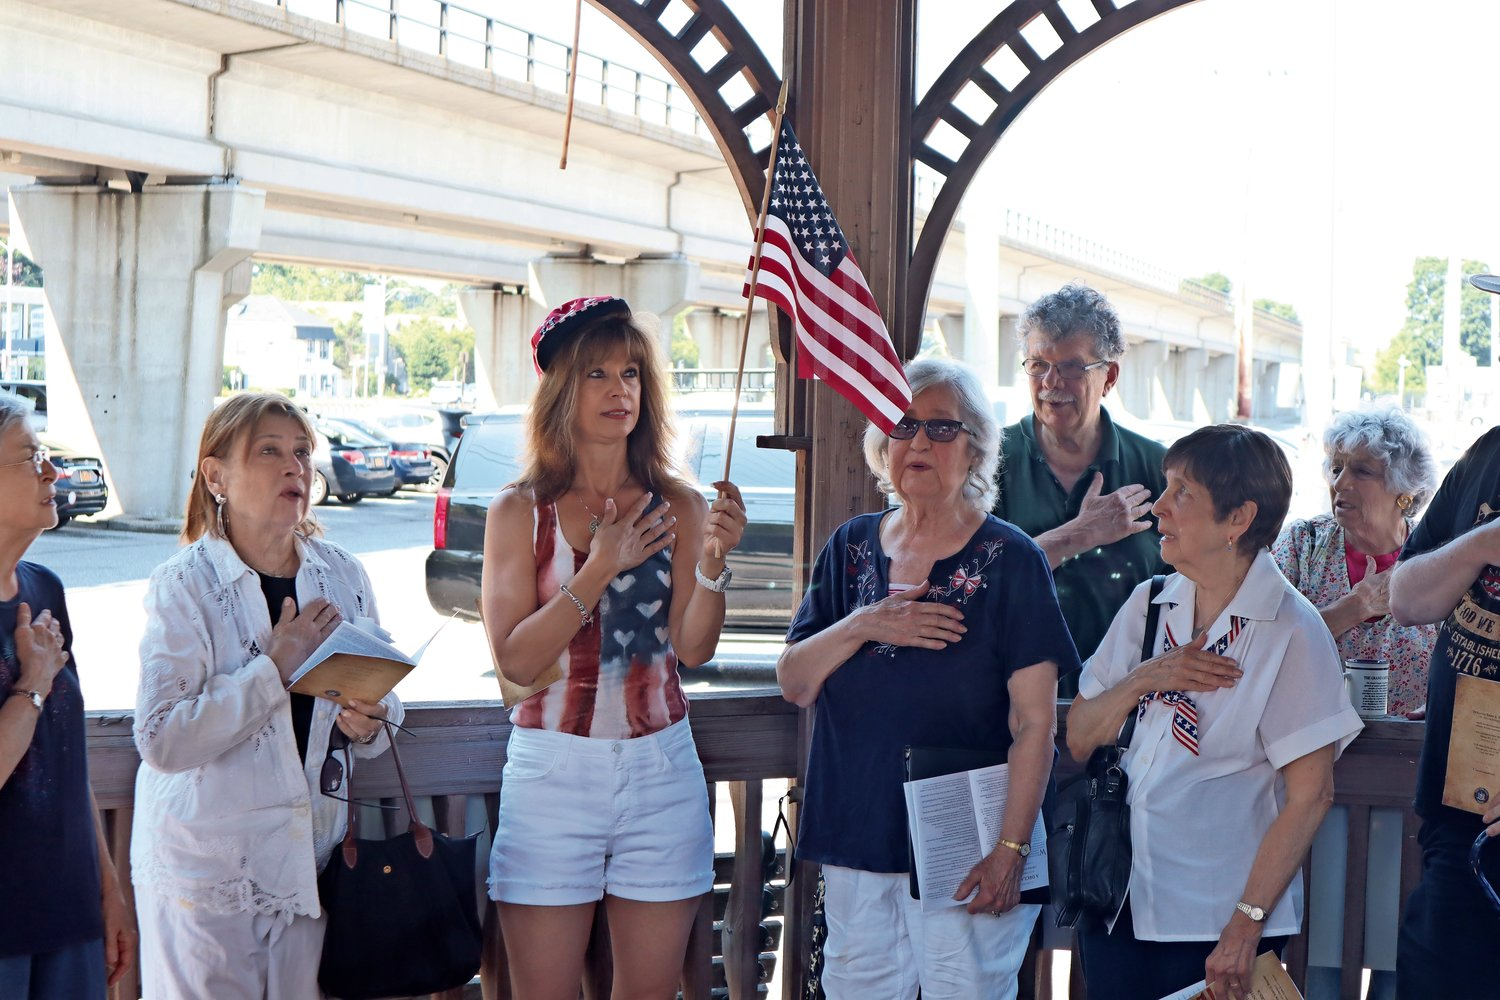 Before beginning the reading, Merokeans recited the Pledge of Allegiance as Margaret Biegelman, member of the Merrick Chamber of Commerce, held the flag.